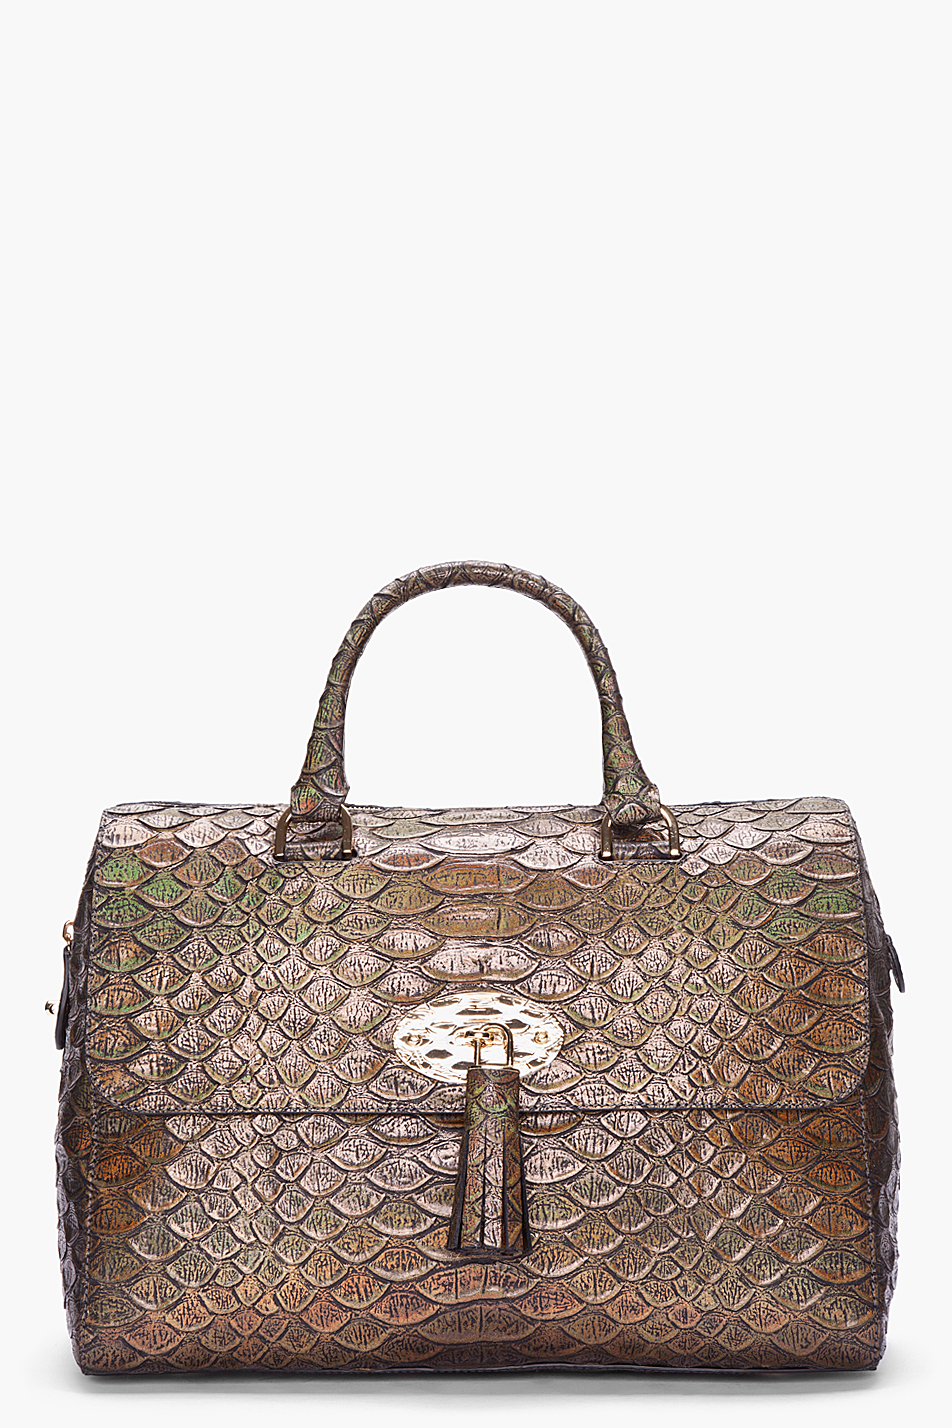 c75c0bdfb86d Lyst - Mulberry Large Metallic Snake Print Del Rey Tote in Brown